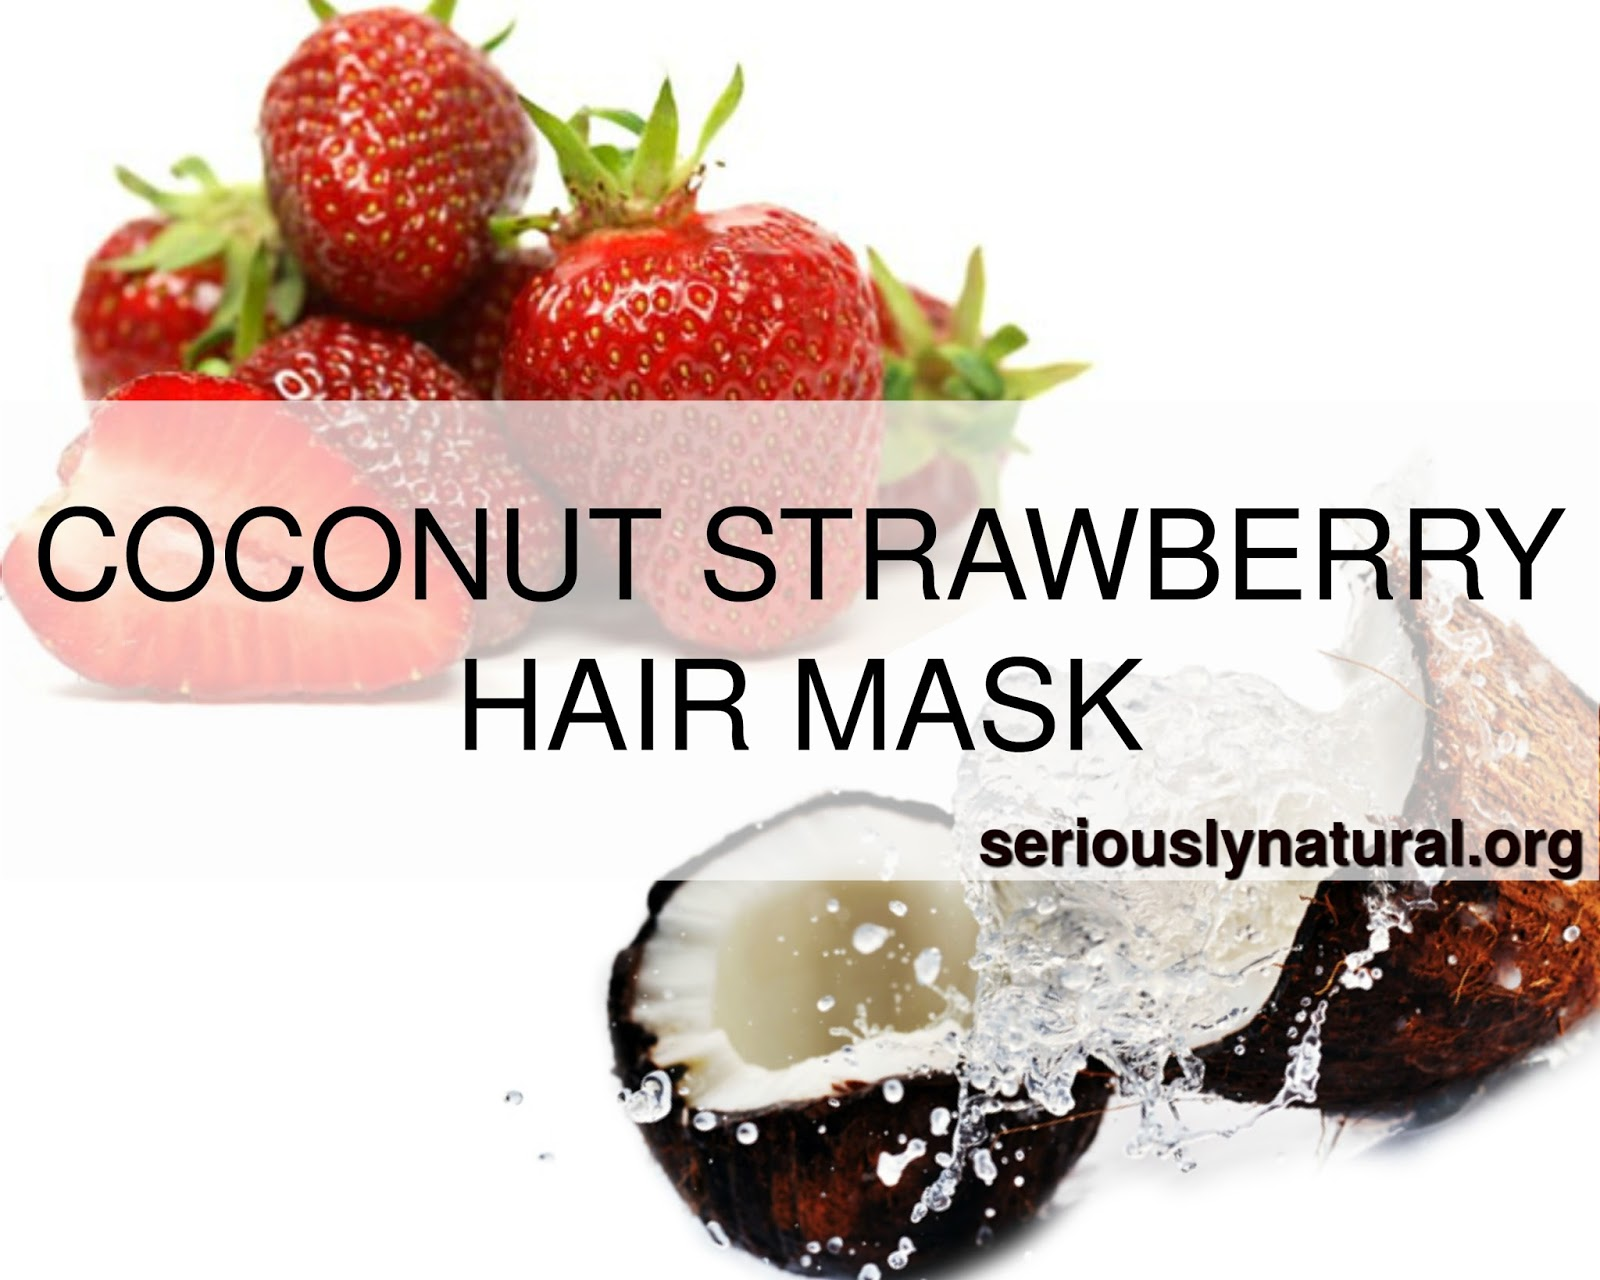 Coconut mask for your natural hair will take it's health to the next level. We've got three recipes that are easy to make and fun to try.